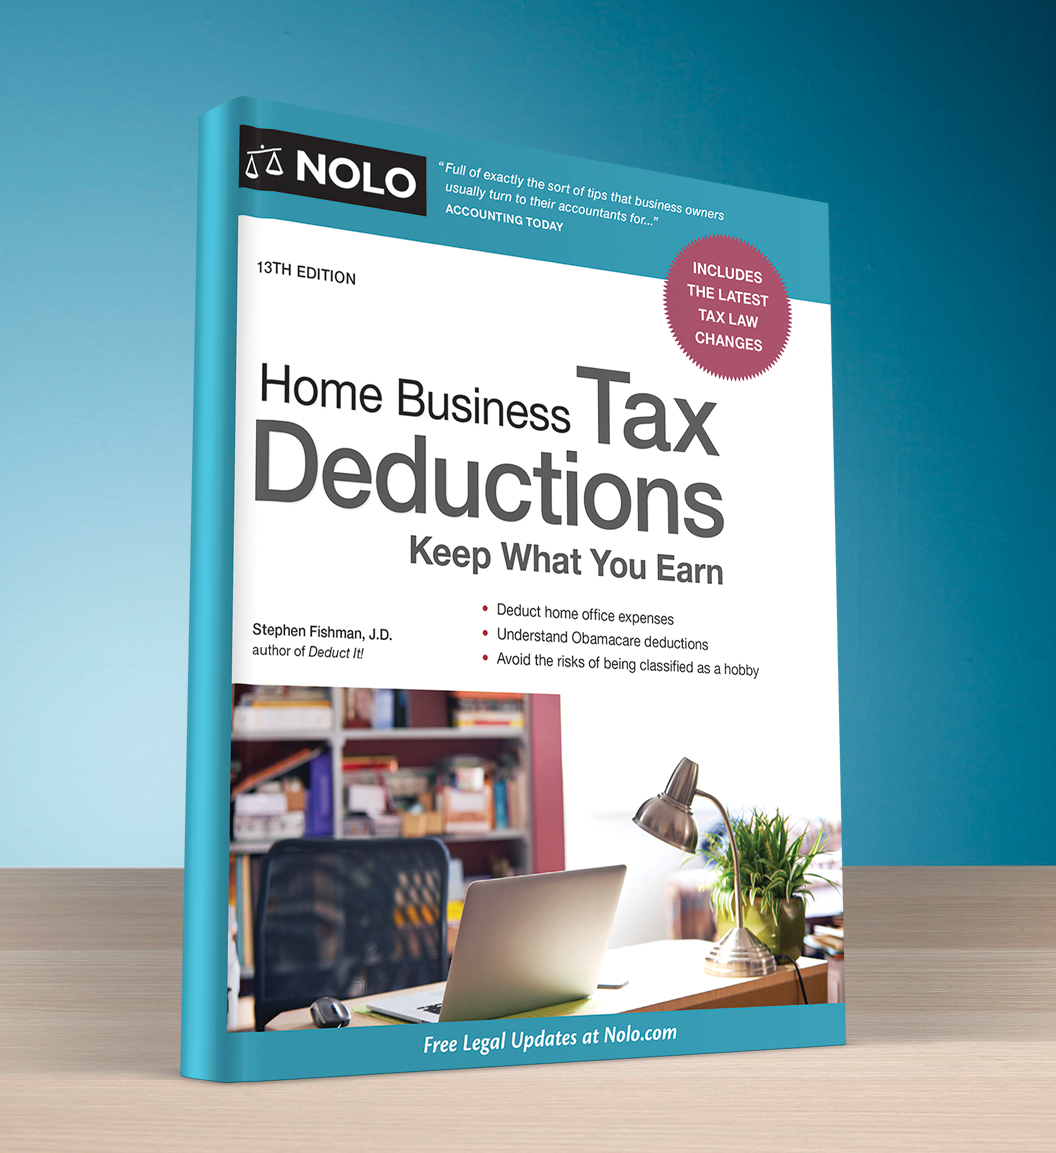 Home Business Tax Deductions (14th edition) - #4750